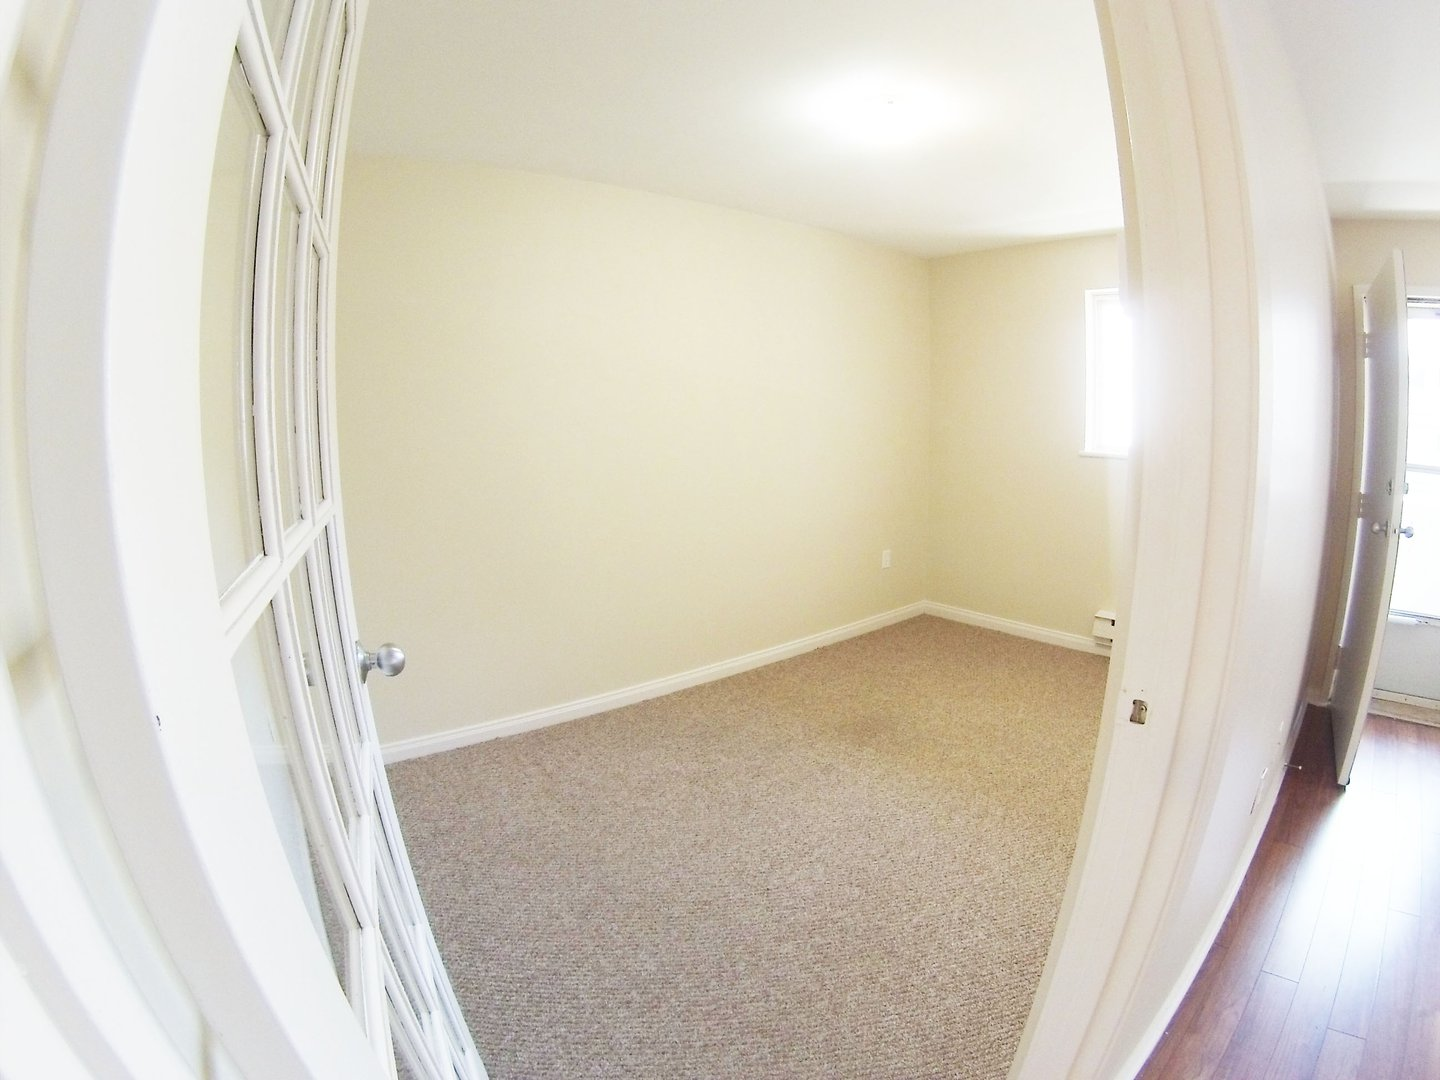 Apartment for rent at 96 Highfield Park Drive B, Dartmouth, NS. This is the empty room with hardwood floor, natural light and carpet.